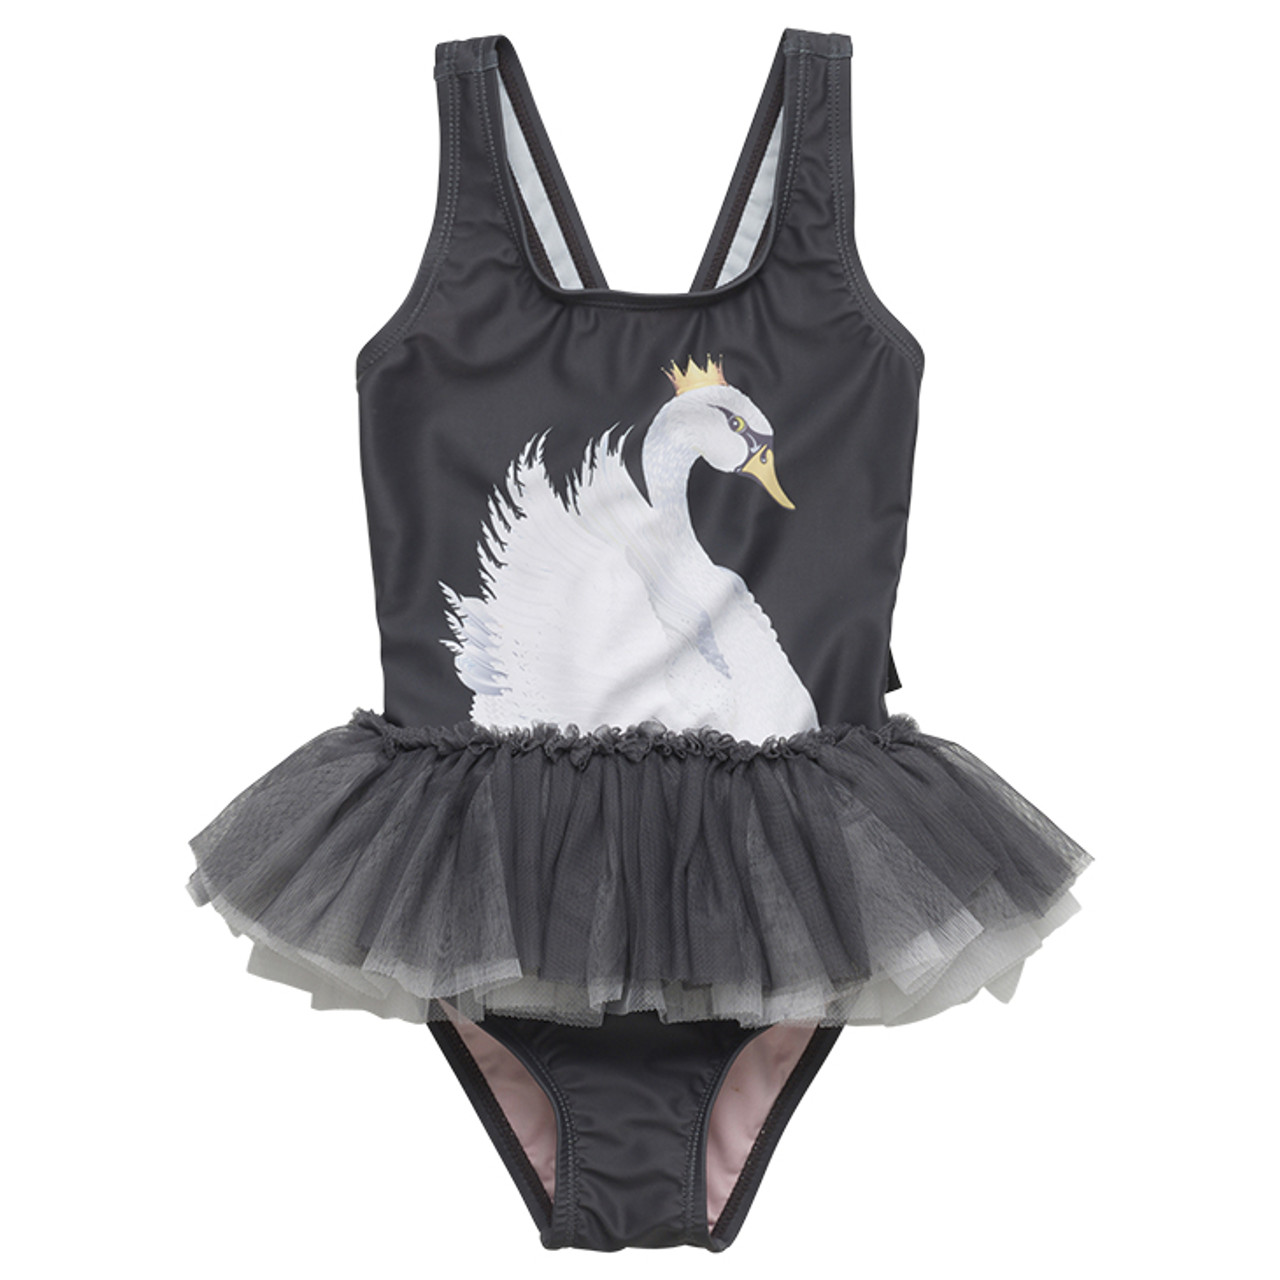 e12a7be0266da Rock Your Baby Tulle One Piece Swimsuit, Swan Lake - Spearmint ...